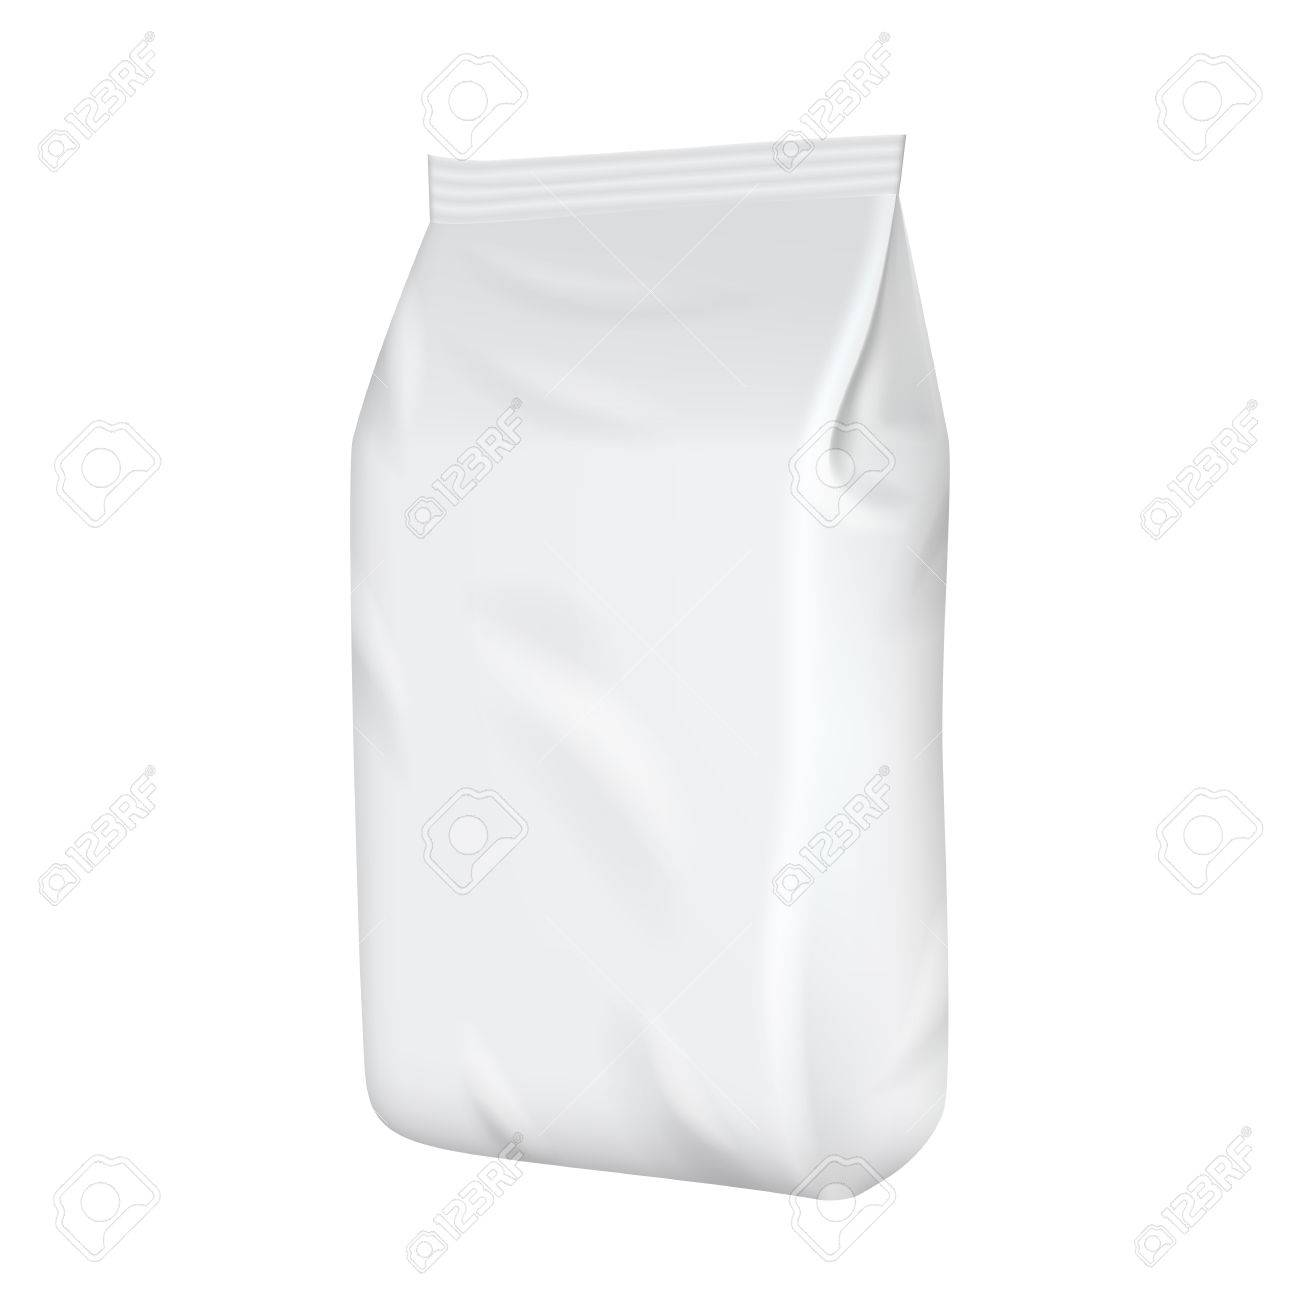 Blank packaging isolated on white background. Foil food snack bag for coffee, chips. Package template. Realistic 3d mockup. Plastic pack template. Ready for design. Vector illustration. - 57190656